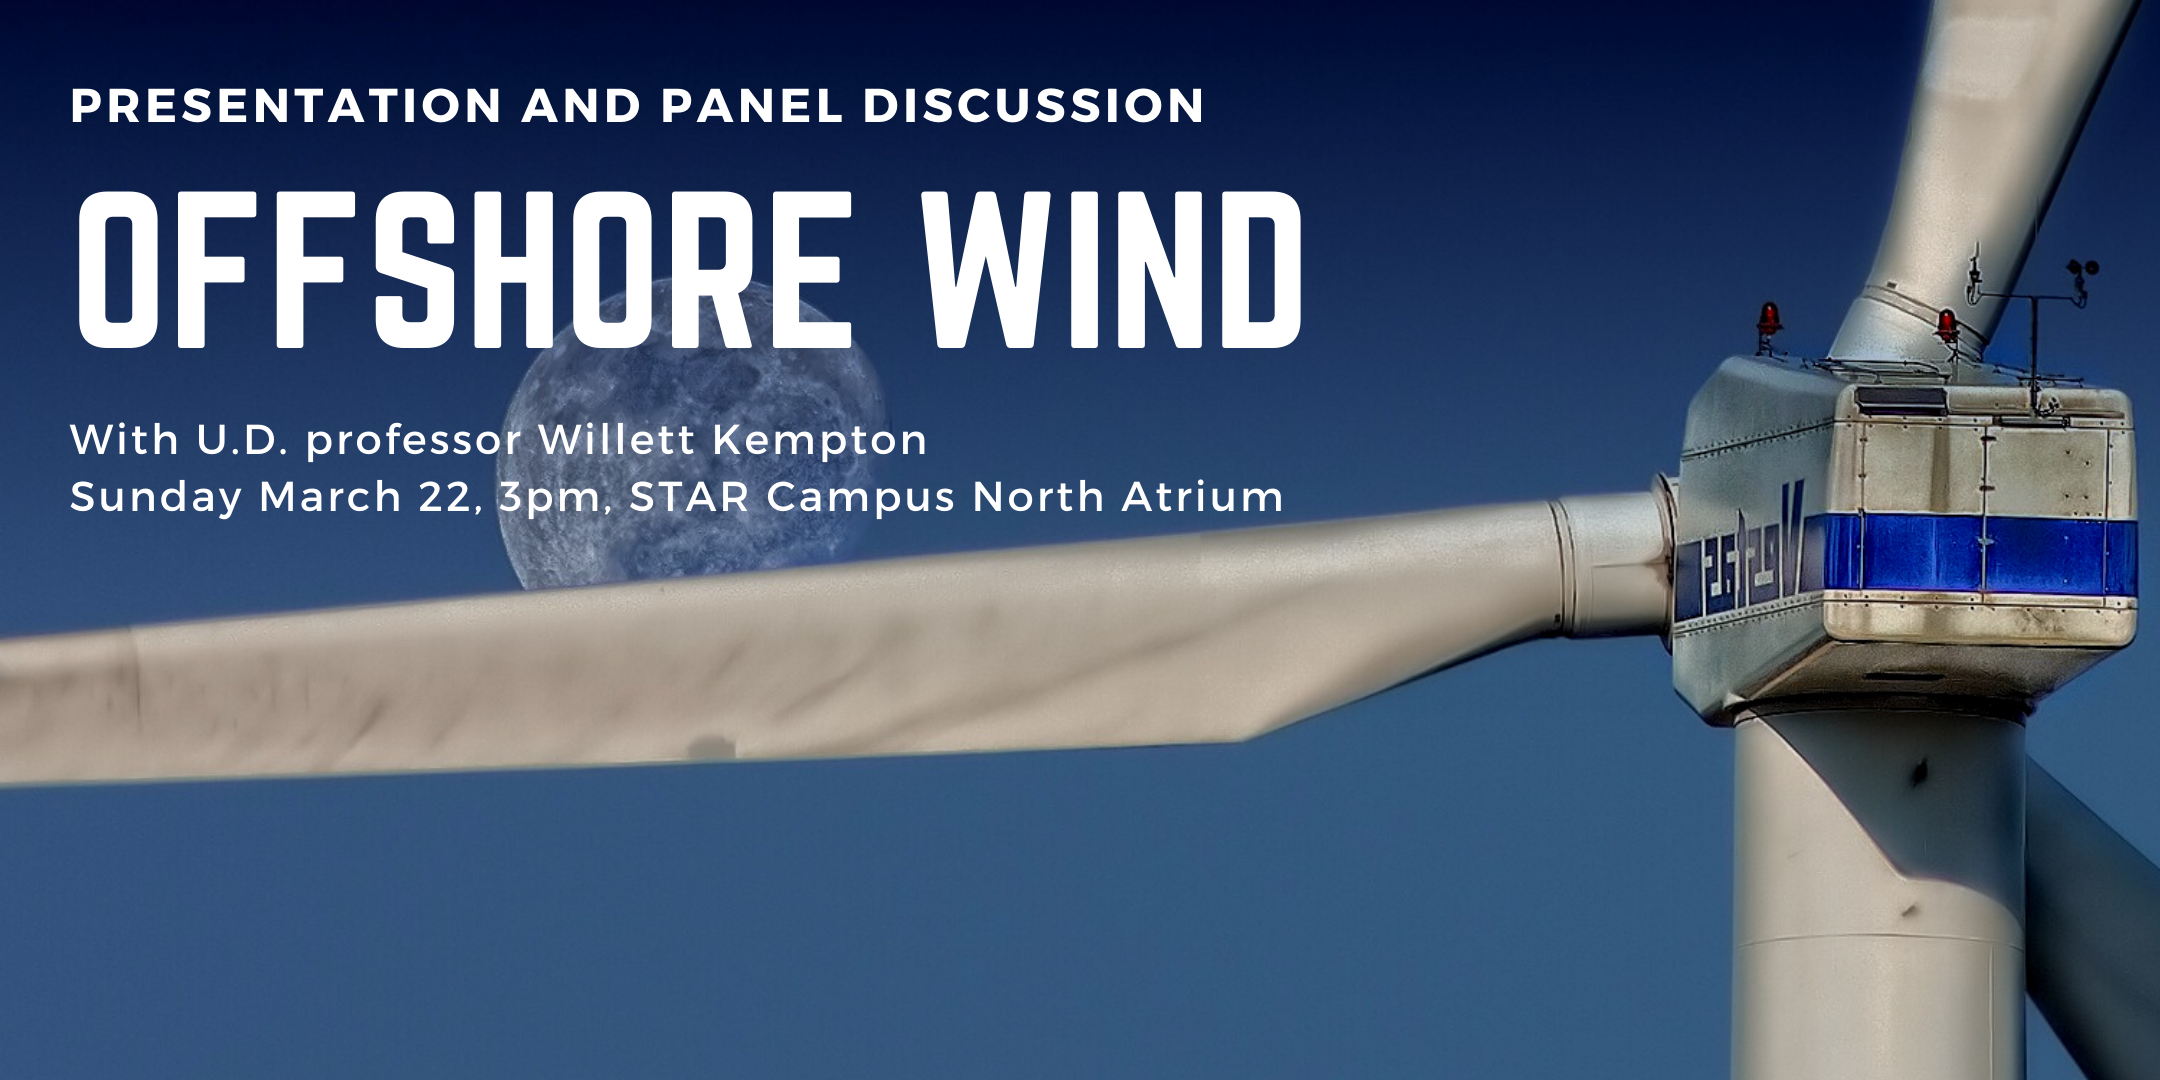 Presentation and Panel Discussion - OFFSHORE WIND